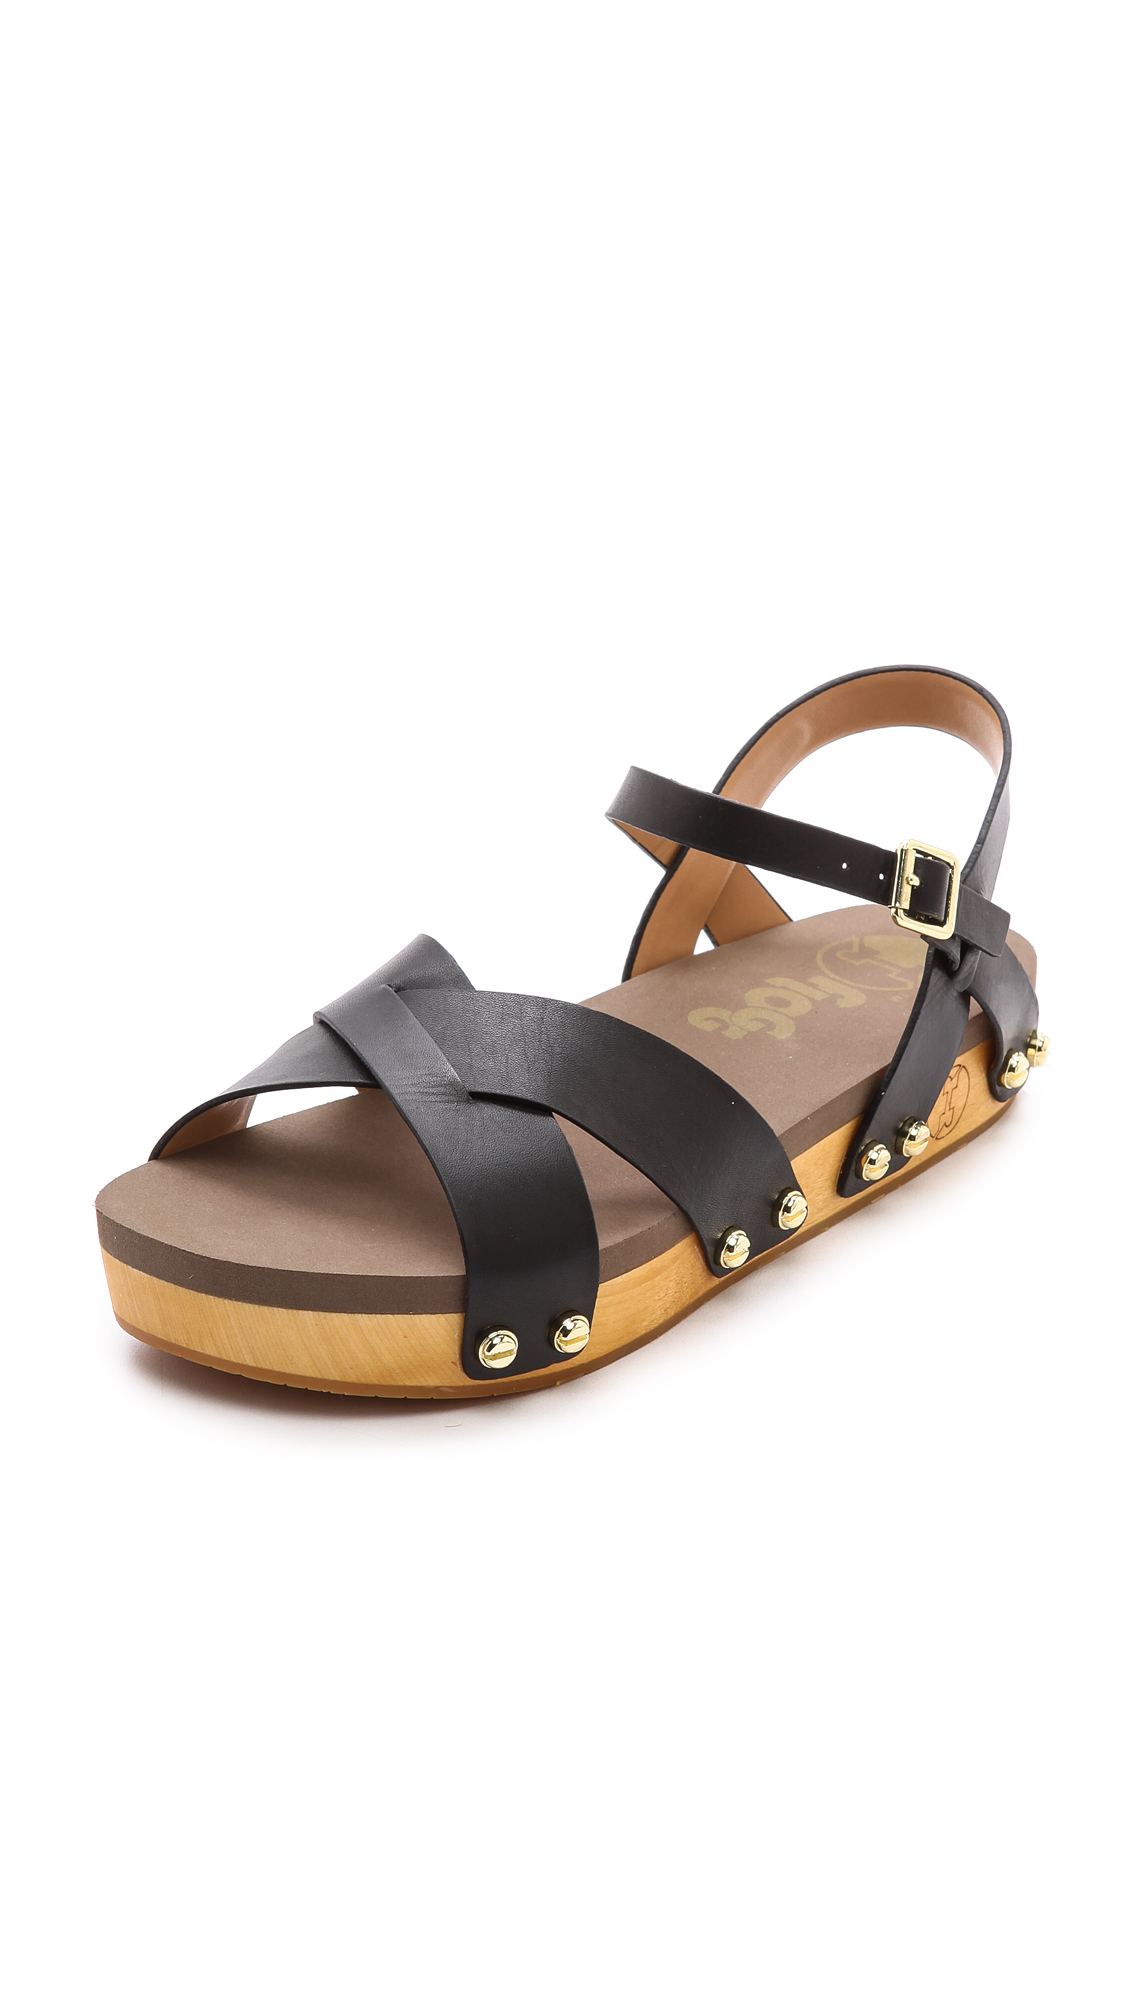 Lyst Flogg Nessy Ankle Strap Flat Sandals Brown In Black